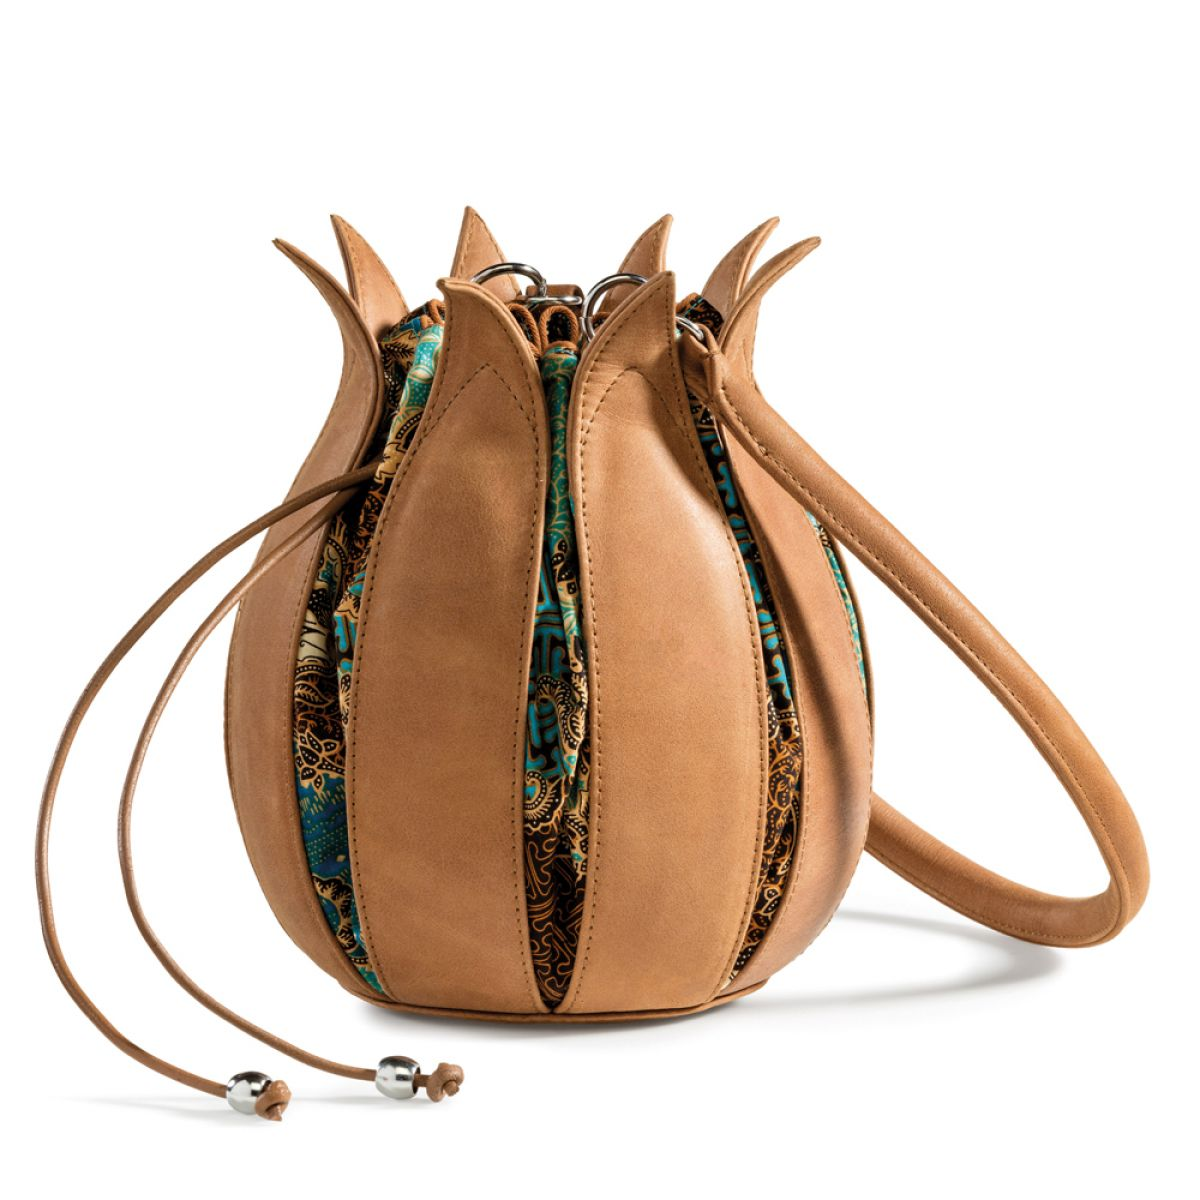 By-Lin Tulip Leather Bag - Cognac with Ibiza Batik Lining